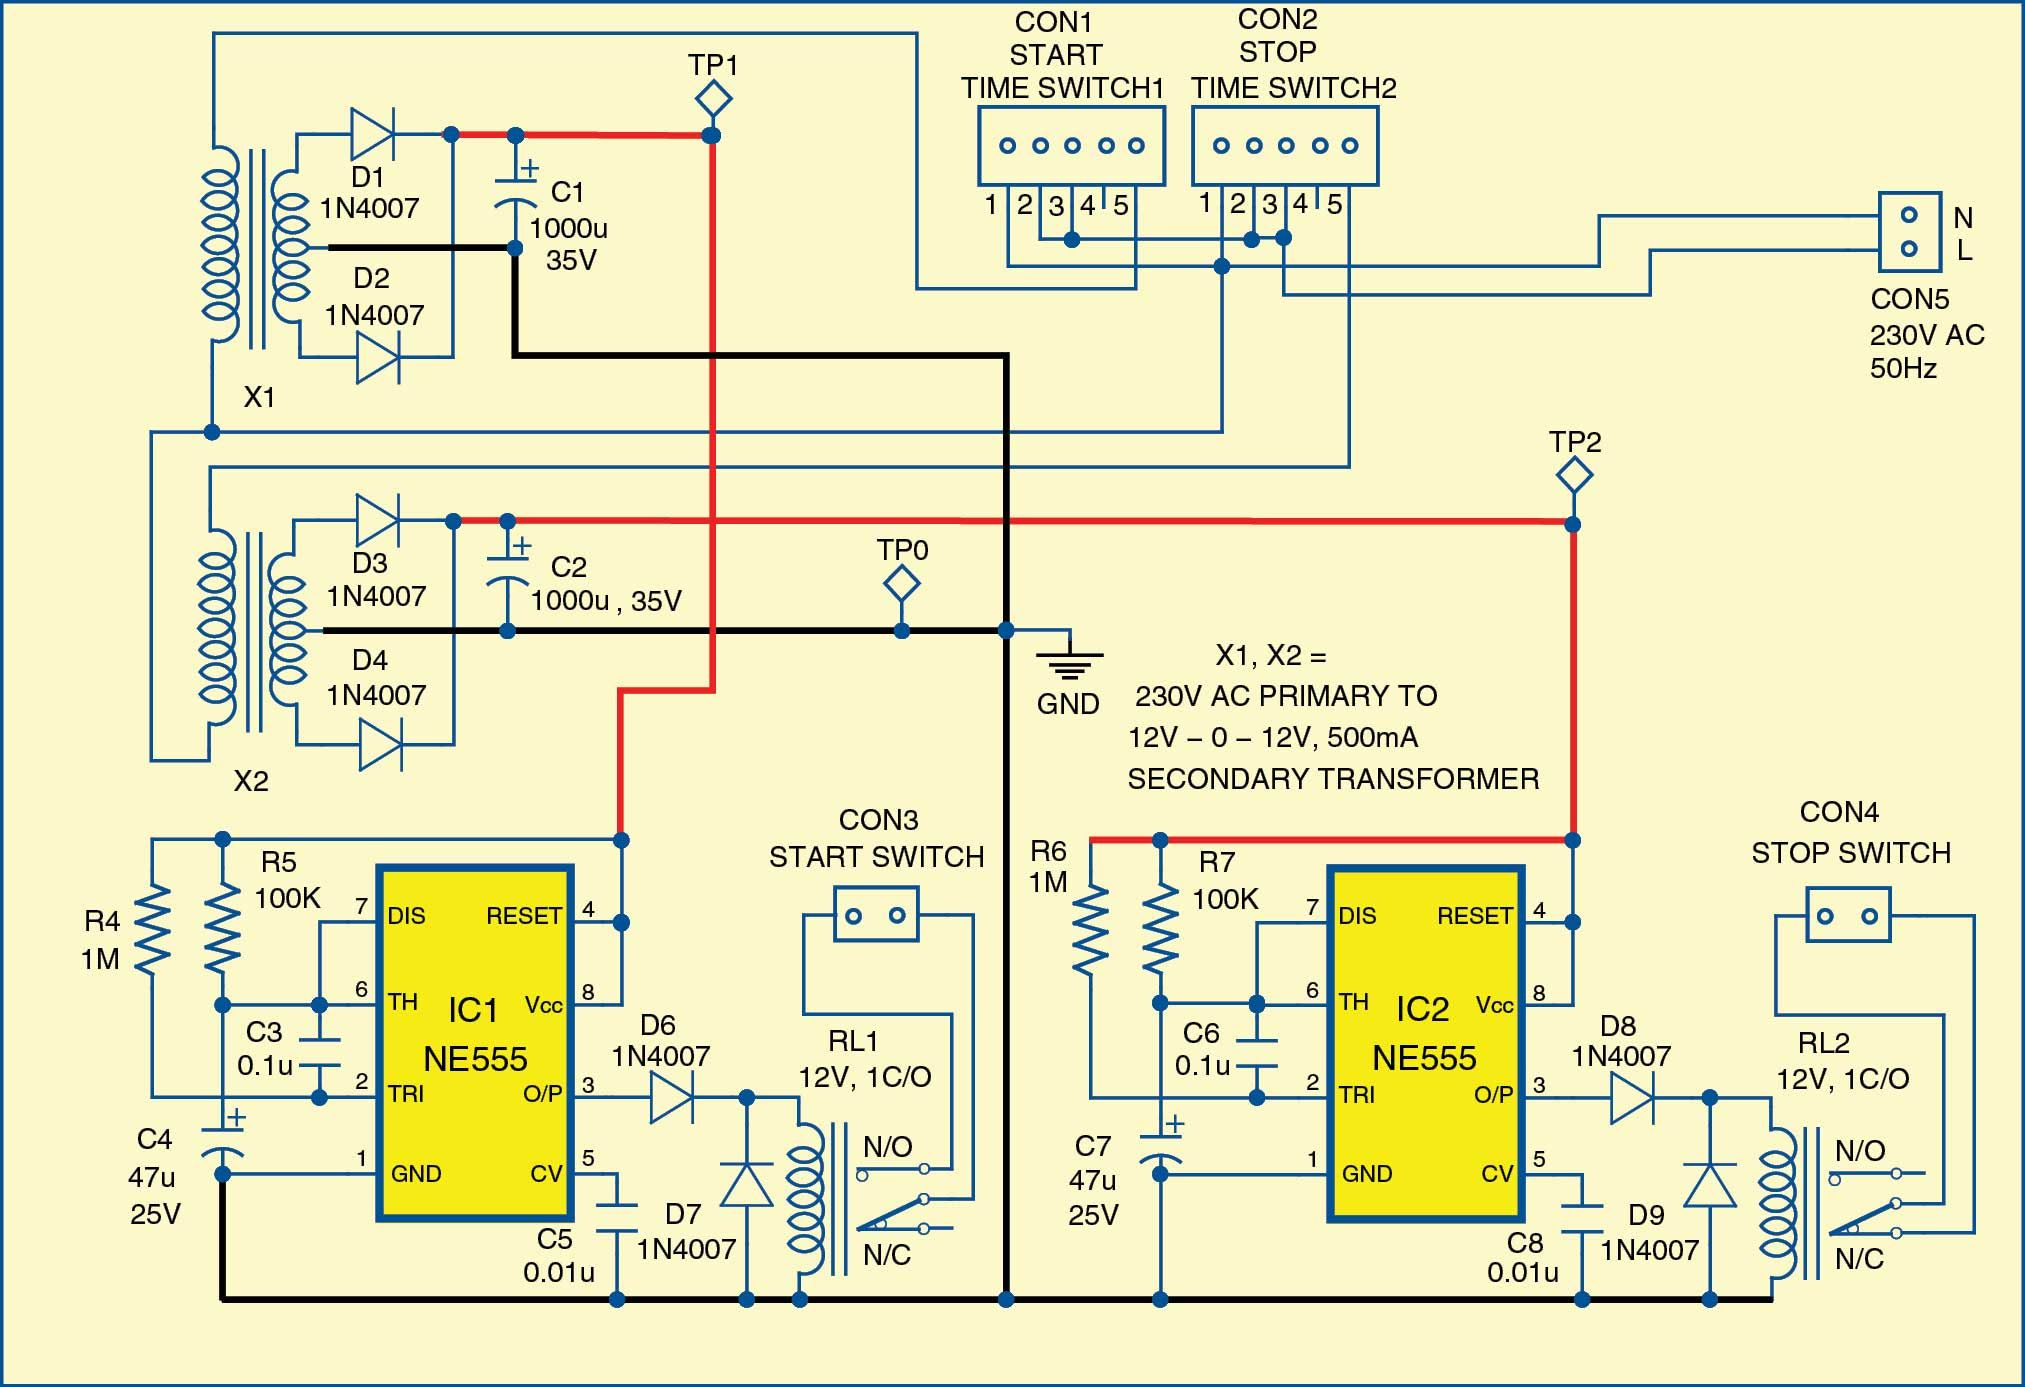 5411a219a8ecb5a8161eaf2b8541ab62 programmable on and off controller for 3 phase motor electronics